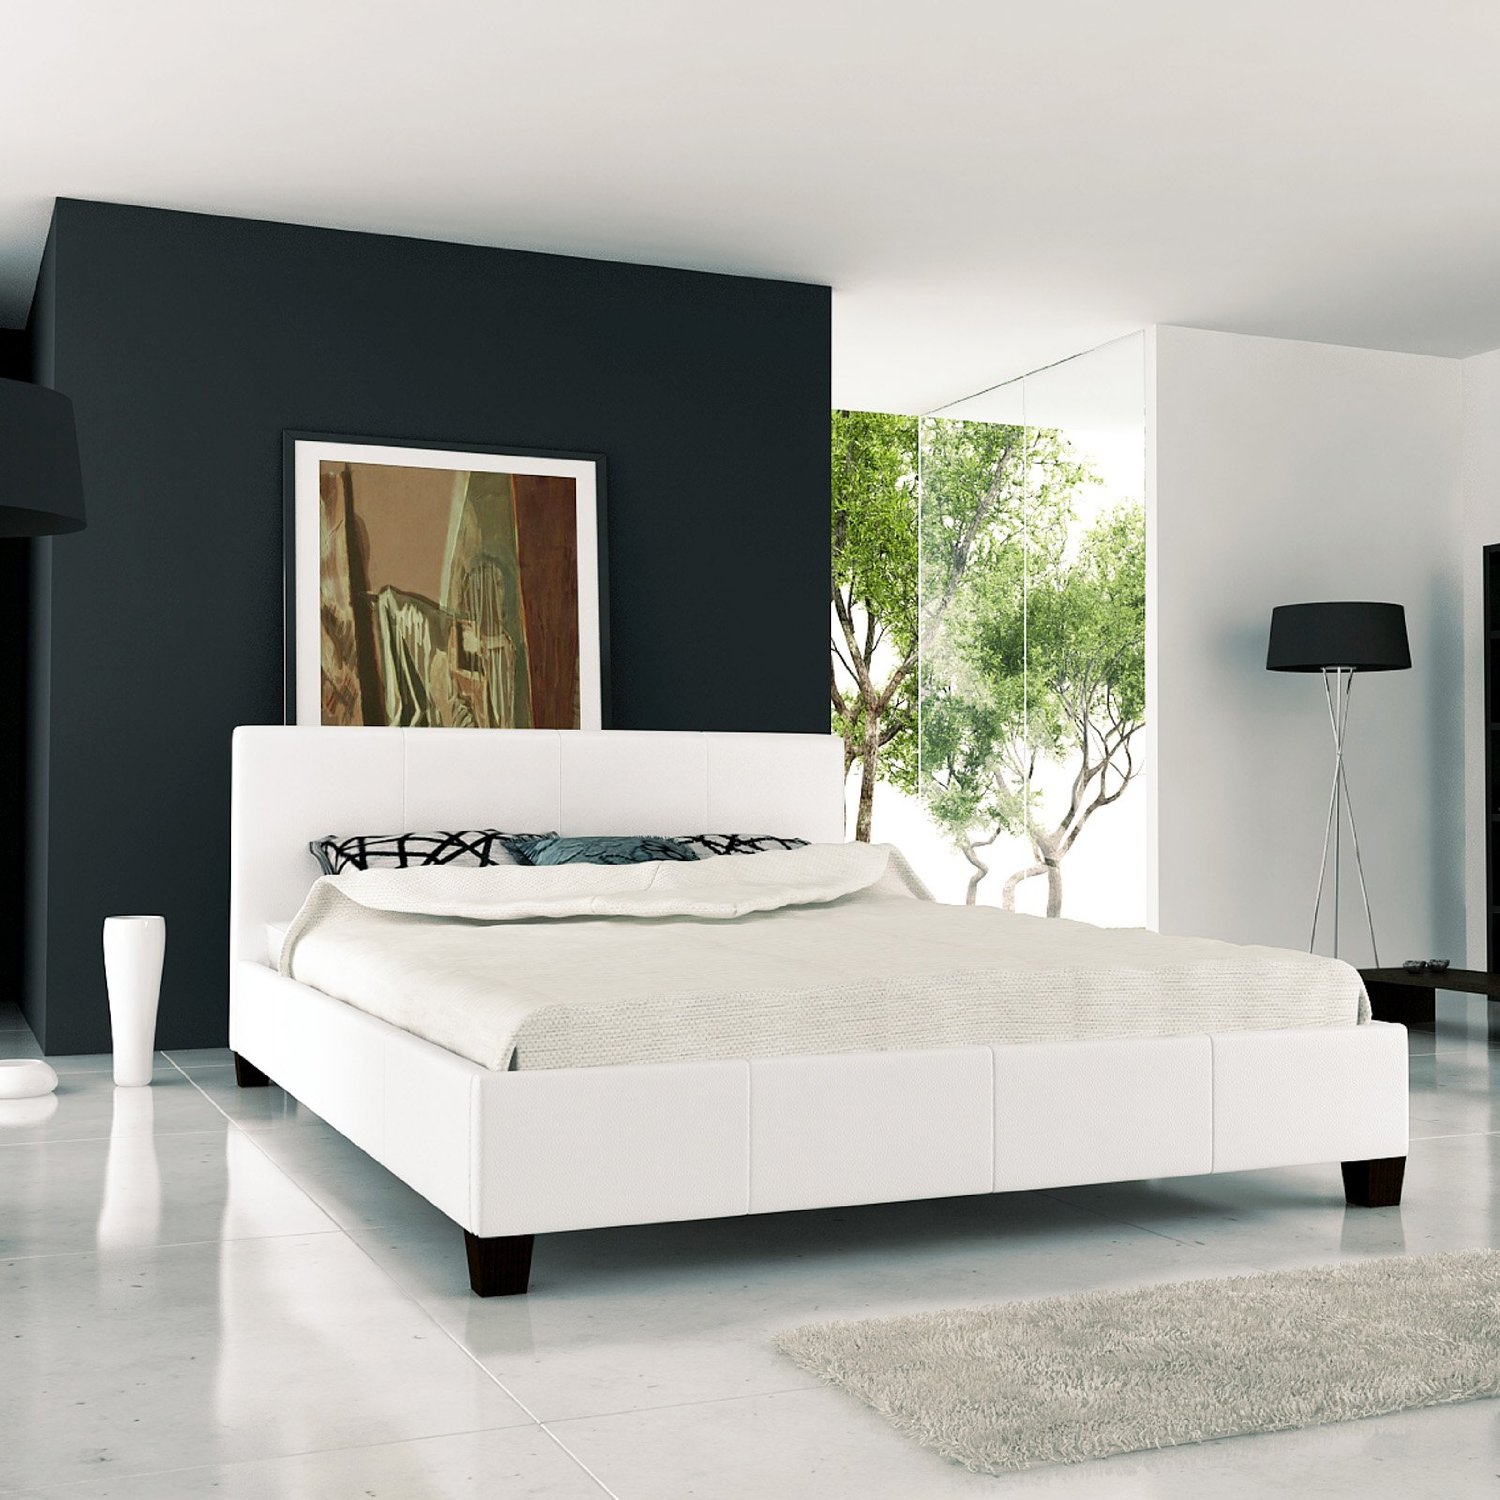 betten kaufen test die top 5 der betten ratgeber im. Black Bedroom Furniture Sets. Home Design Ideas